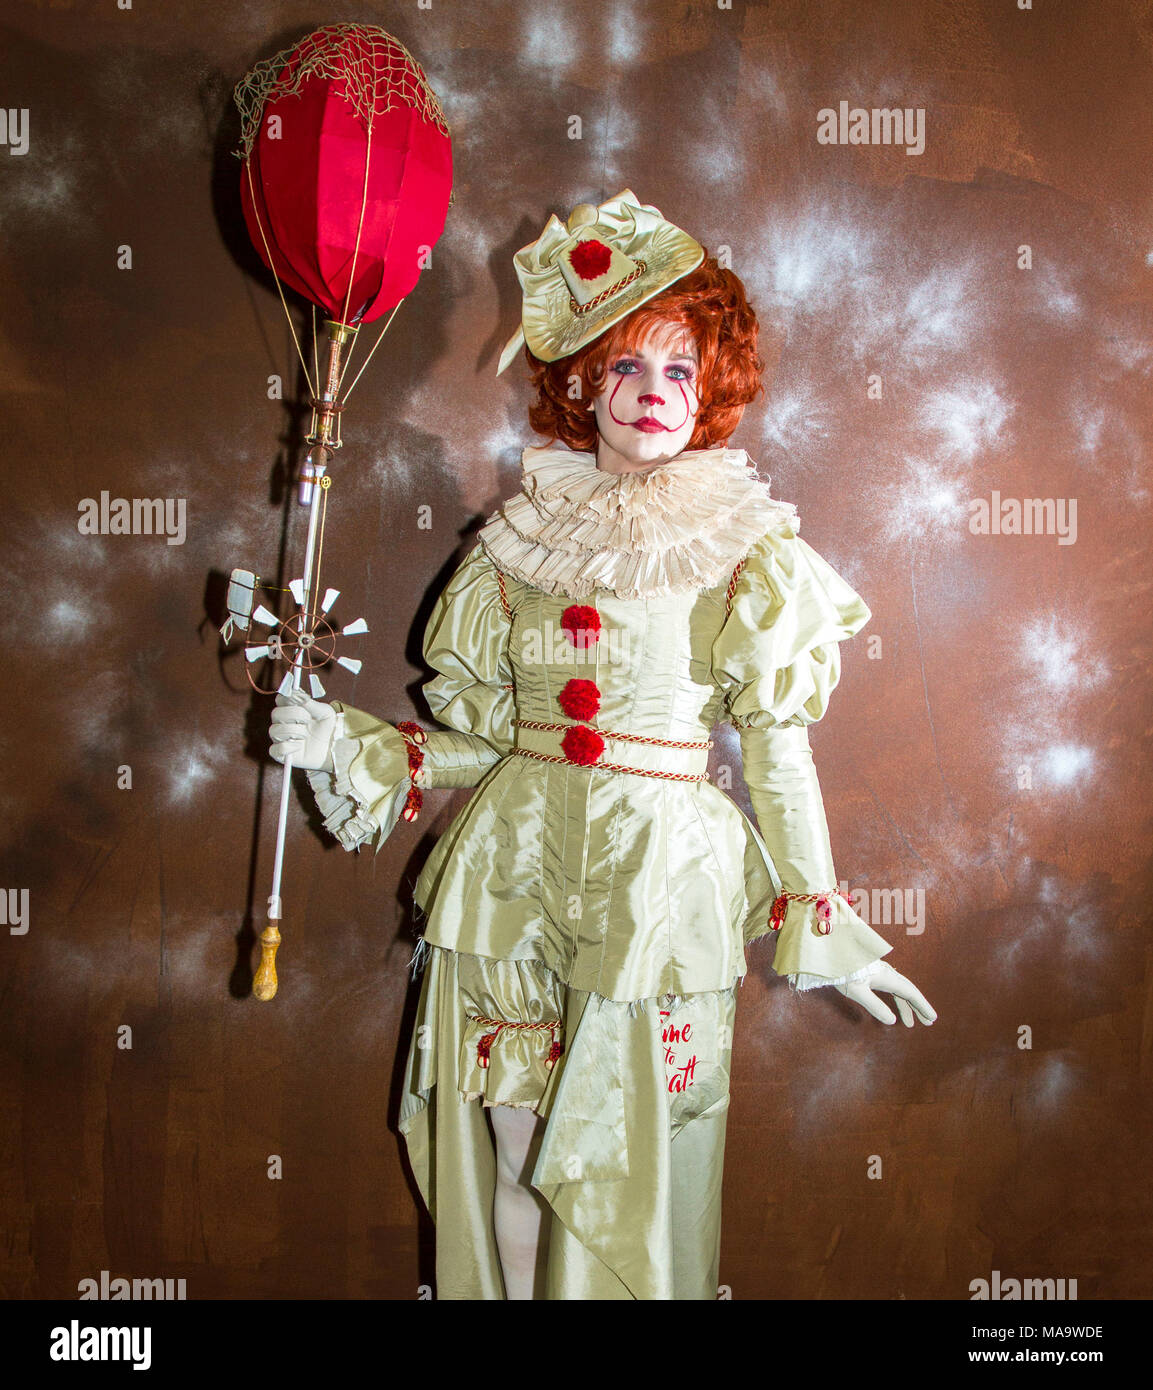 Manchester. 31st March 2018. Julia Scott Post apocalyptic time travellers meet up for a weekend at the asylum as the four day steampunk crossover convention gets under way at the Bowlers Exhibition Centre in Greater Manchester.  Credit: Cernan Elias/Alamy Live News - Stock Image